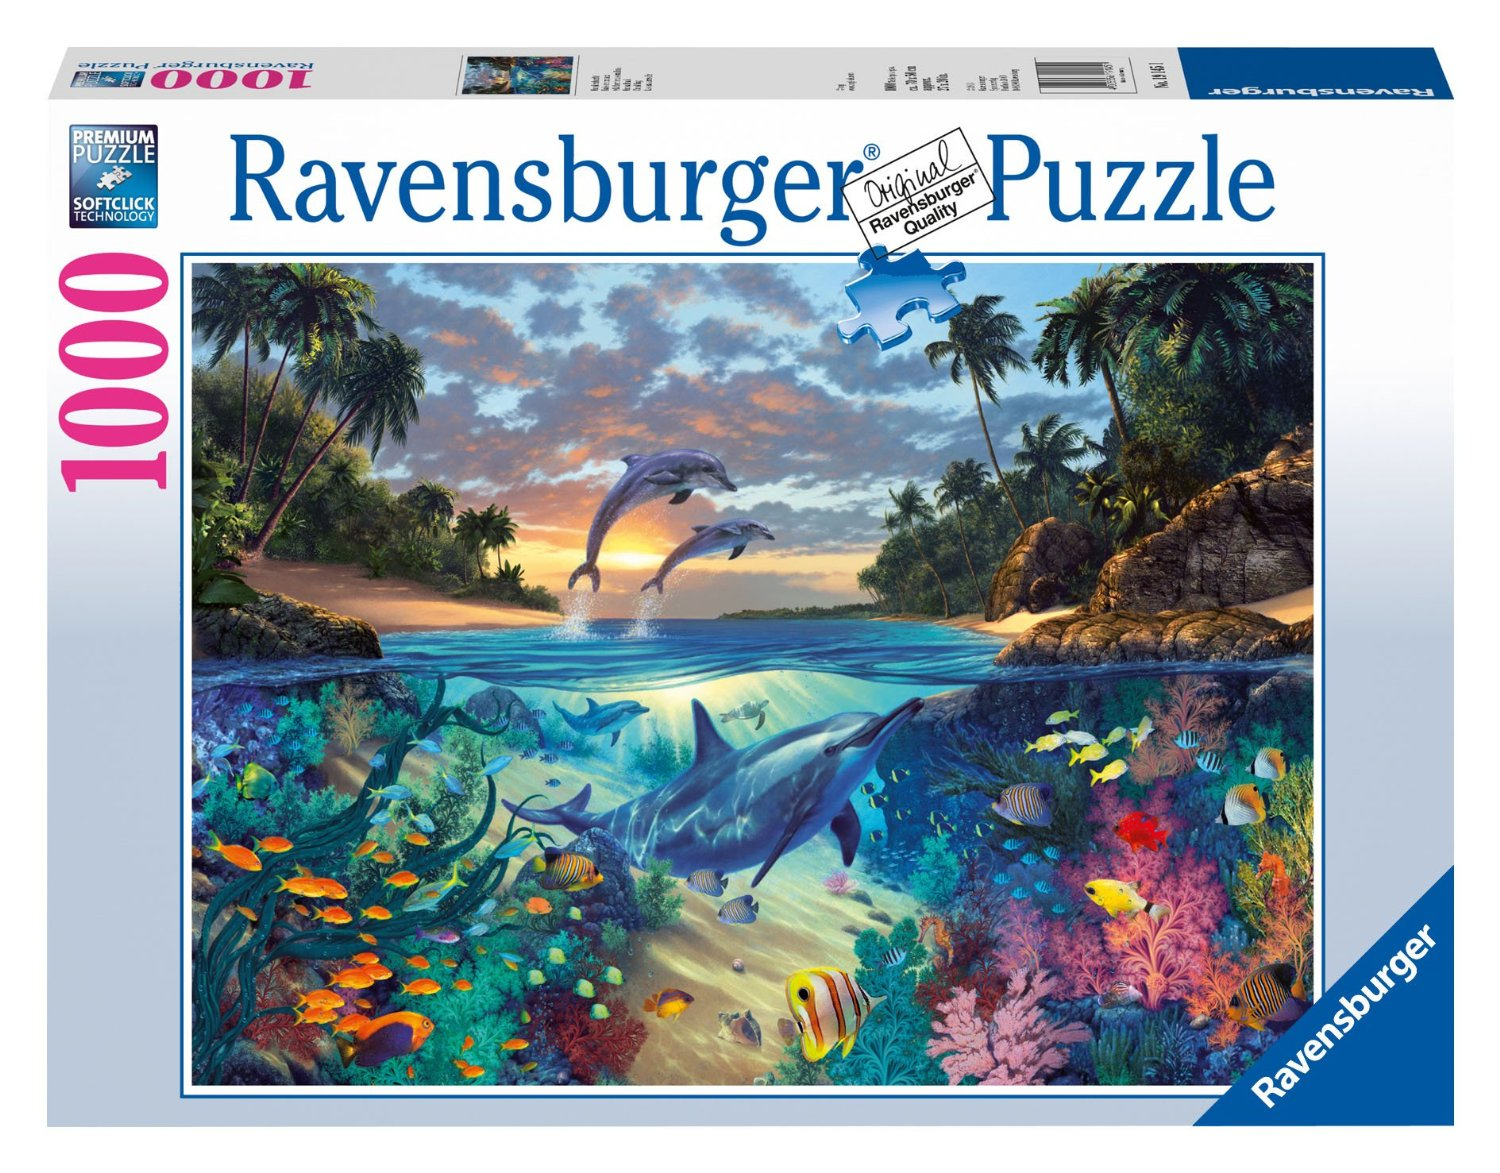 korallenbucht 1000 teile querformat puzzle ravensburger puzzle online kaufen. Black Bedroom Furniture Sets. Home Design Ideas